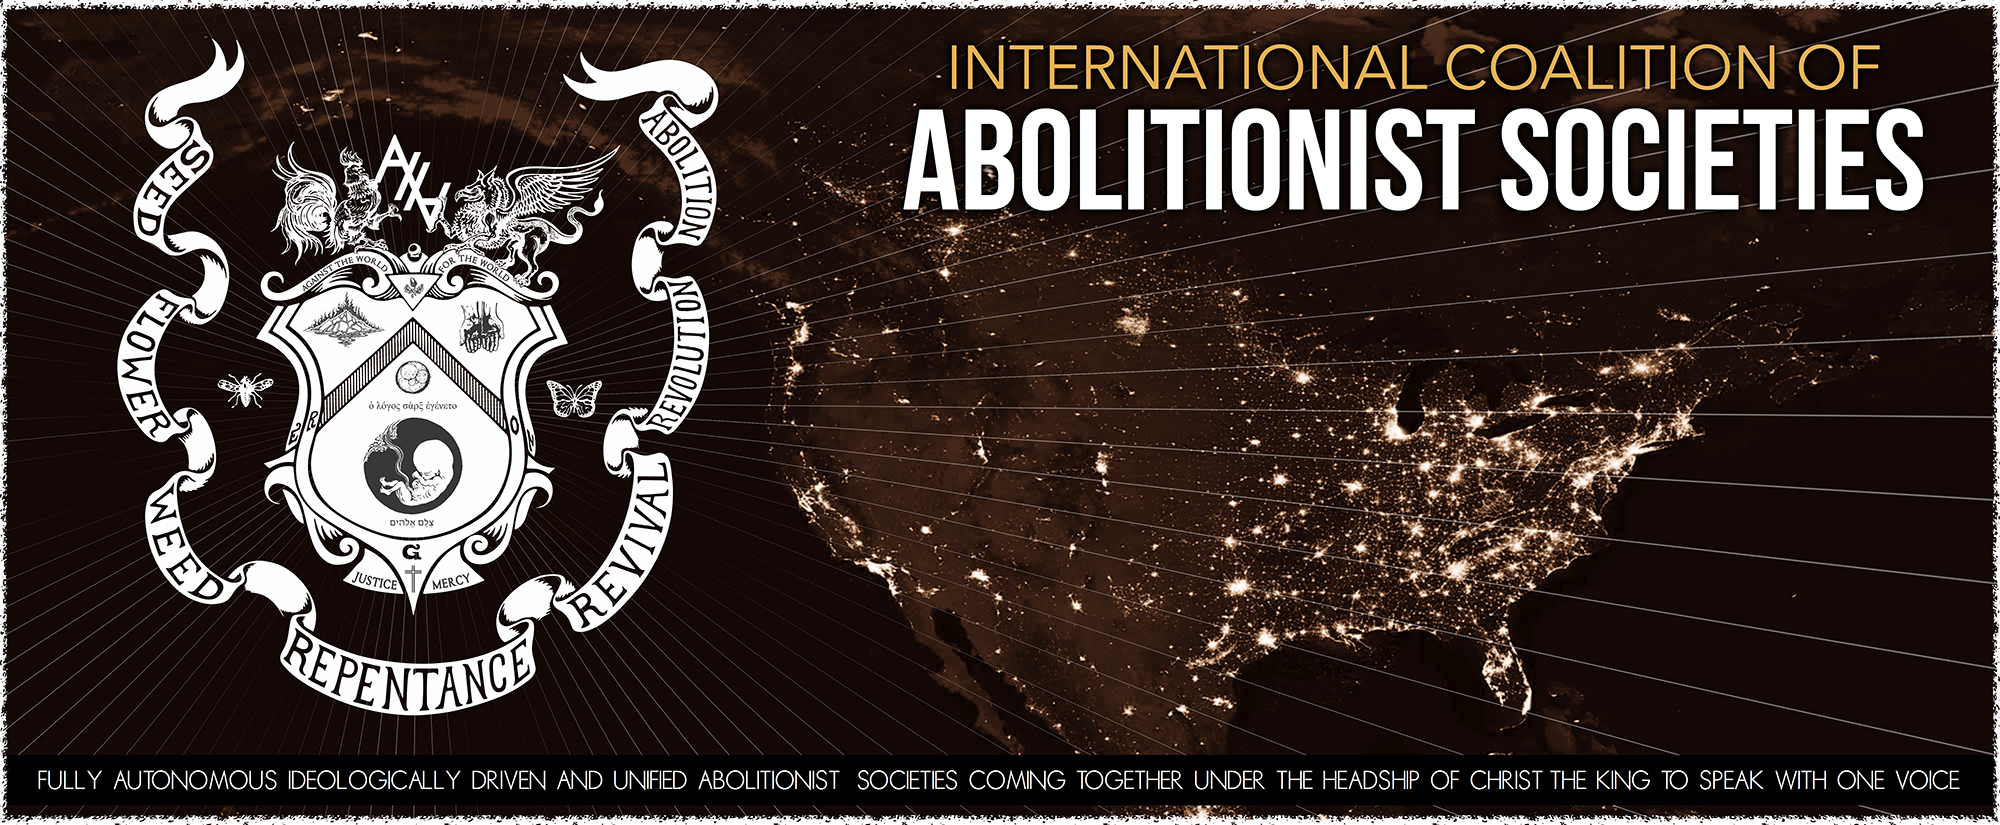 International Coalition of Abolitionist Societies